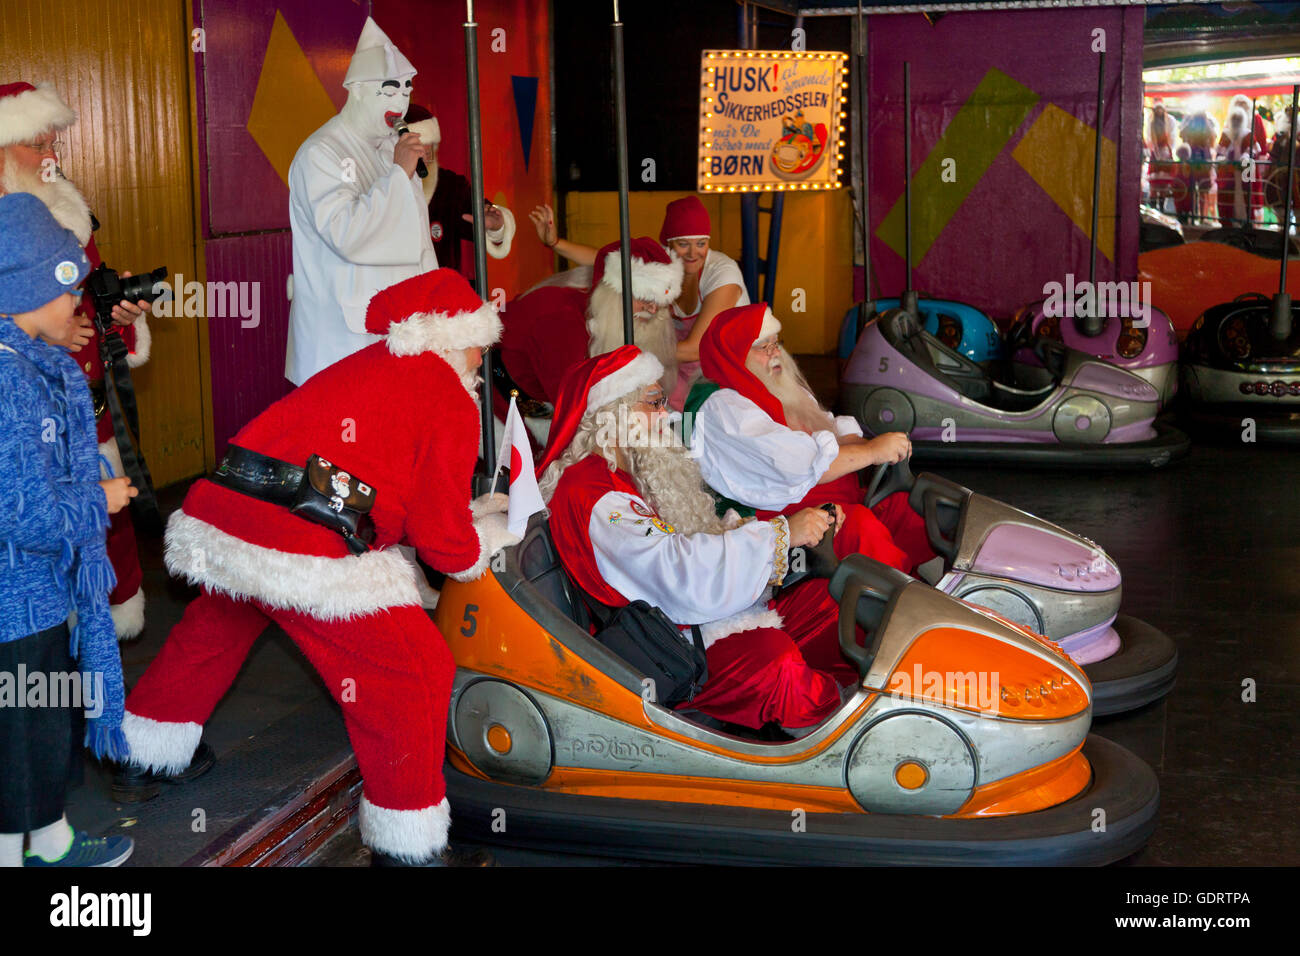 Klampenborg, Denmark. 20th July, 2016.  Races in the bumper cars were one of the competitions  at the World Santa - Stock Image